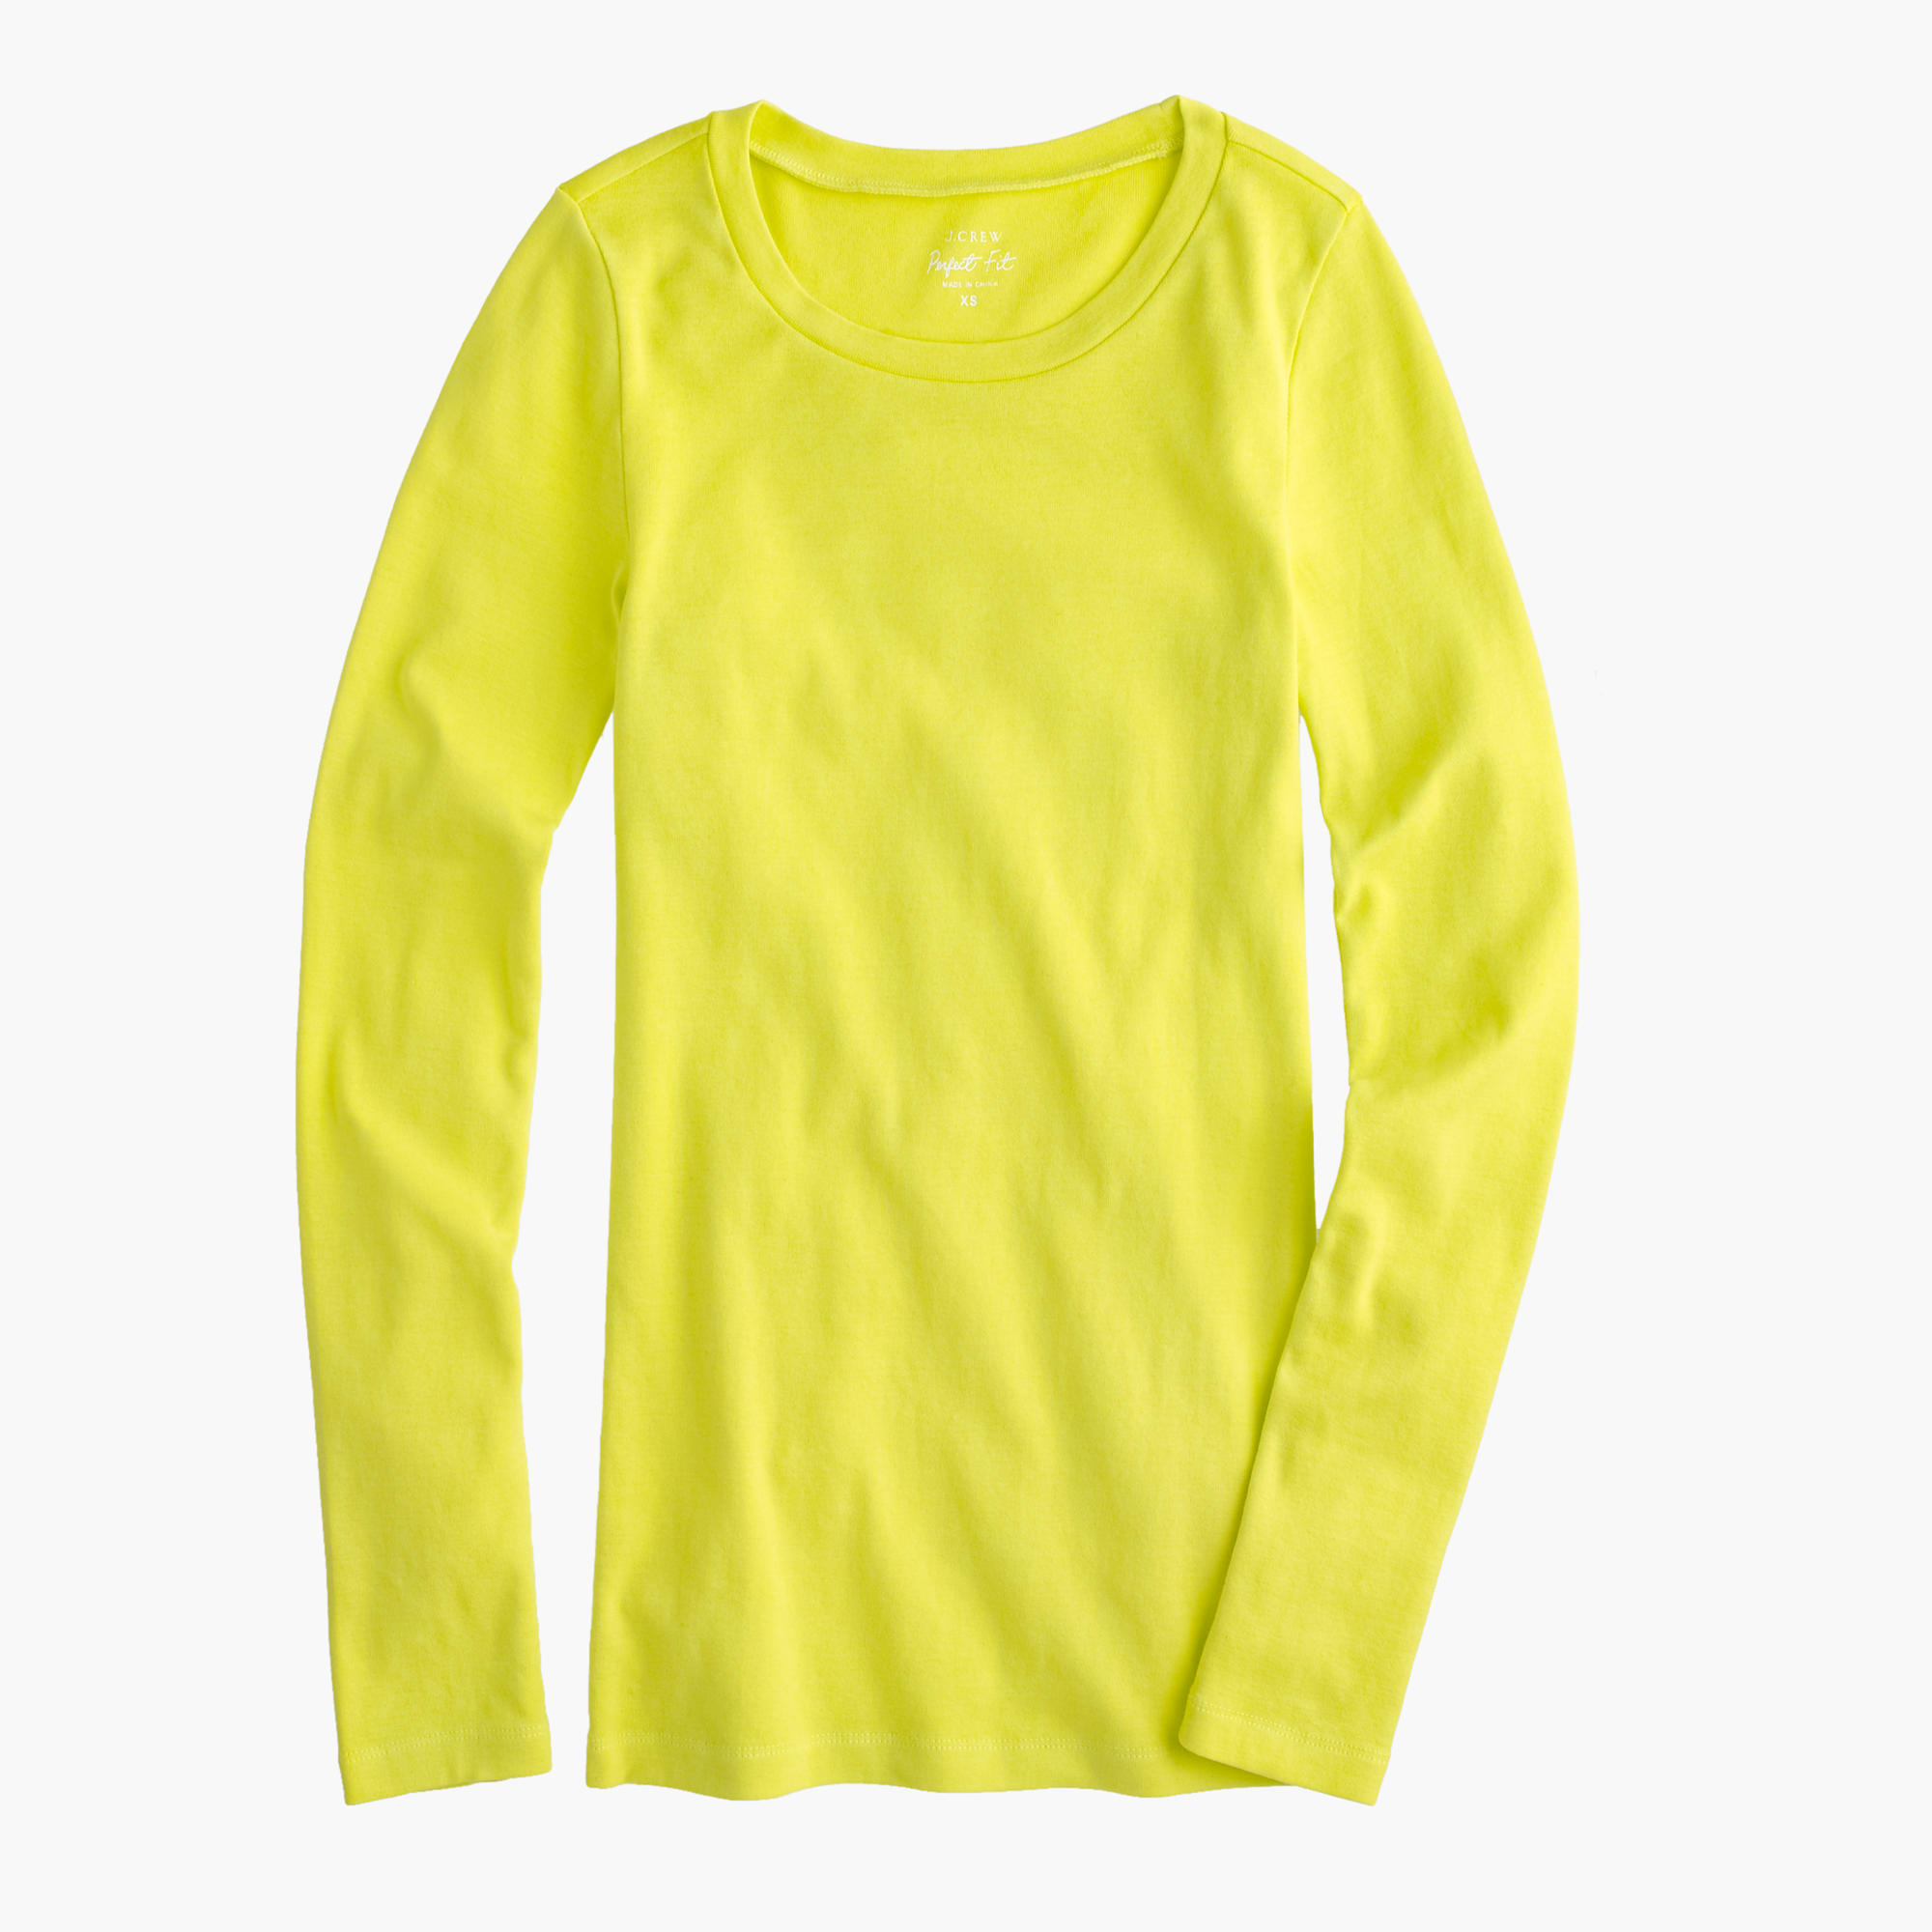 Perfect Fit Long Sleeve T Shirt In Yellow Neon